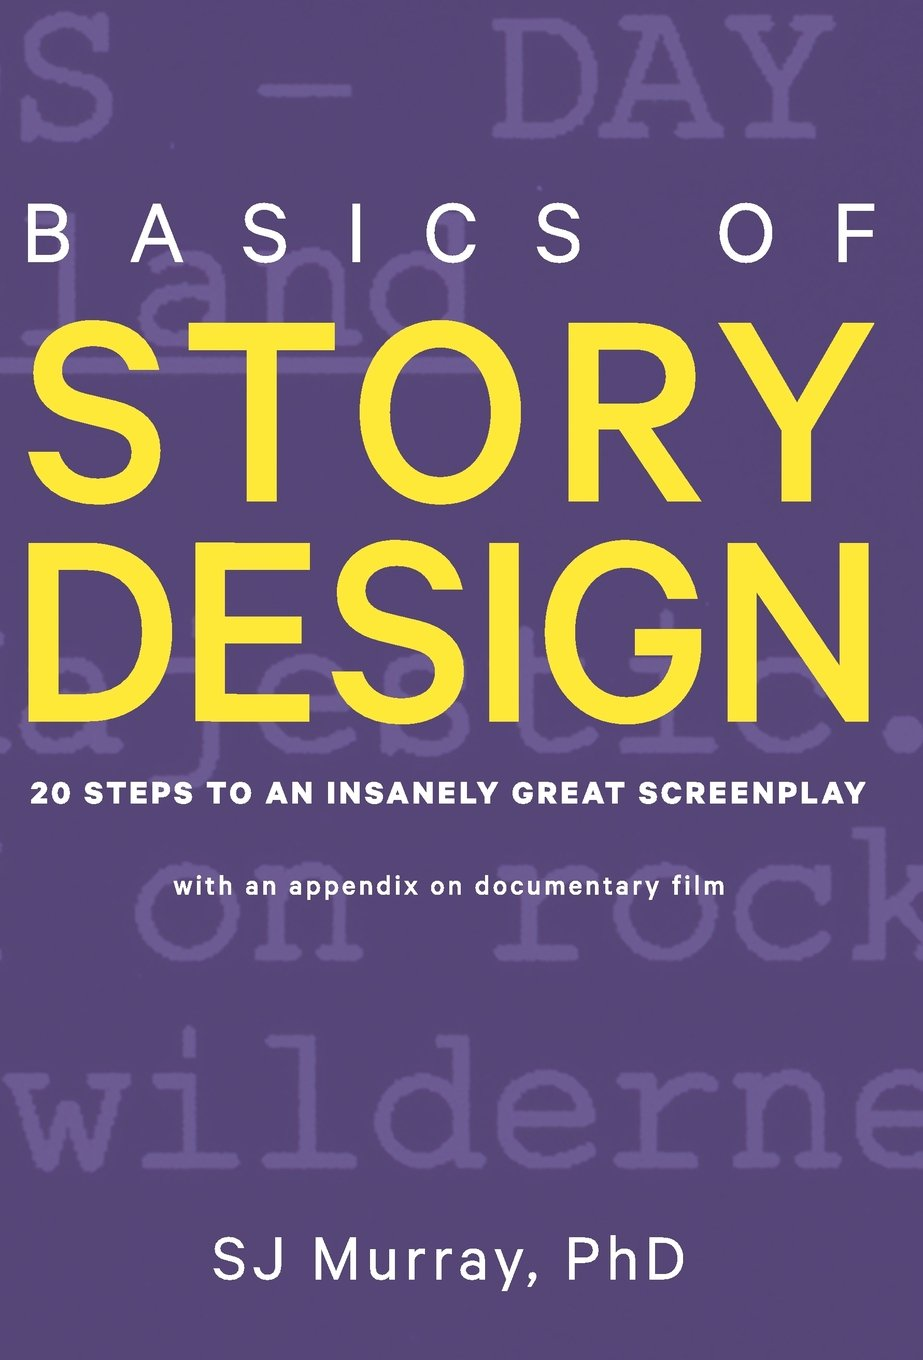 Basics of Story Design: 20 Steps to an Insanely Great Screenplay